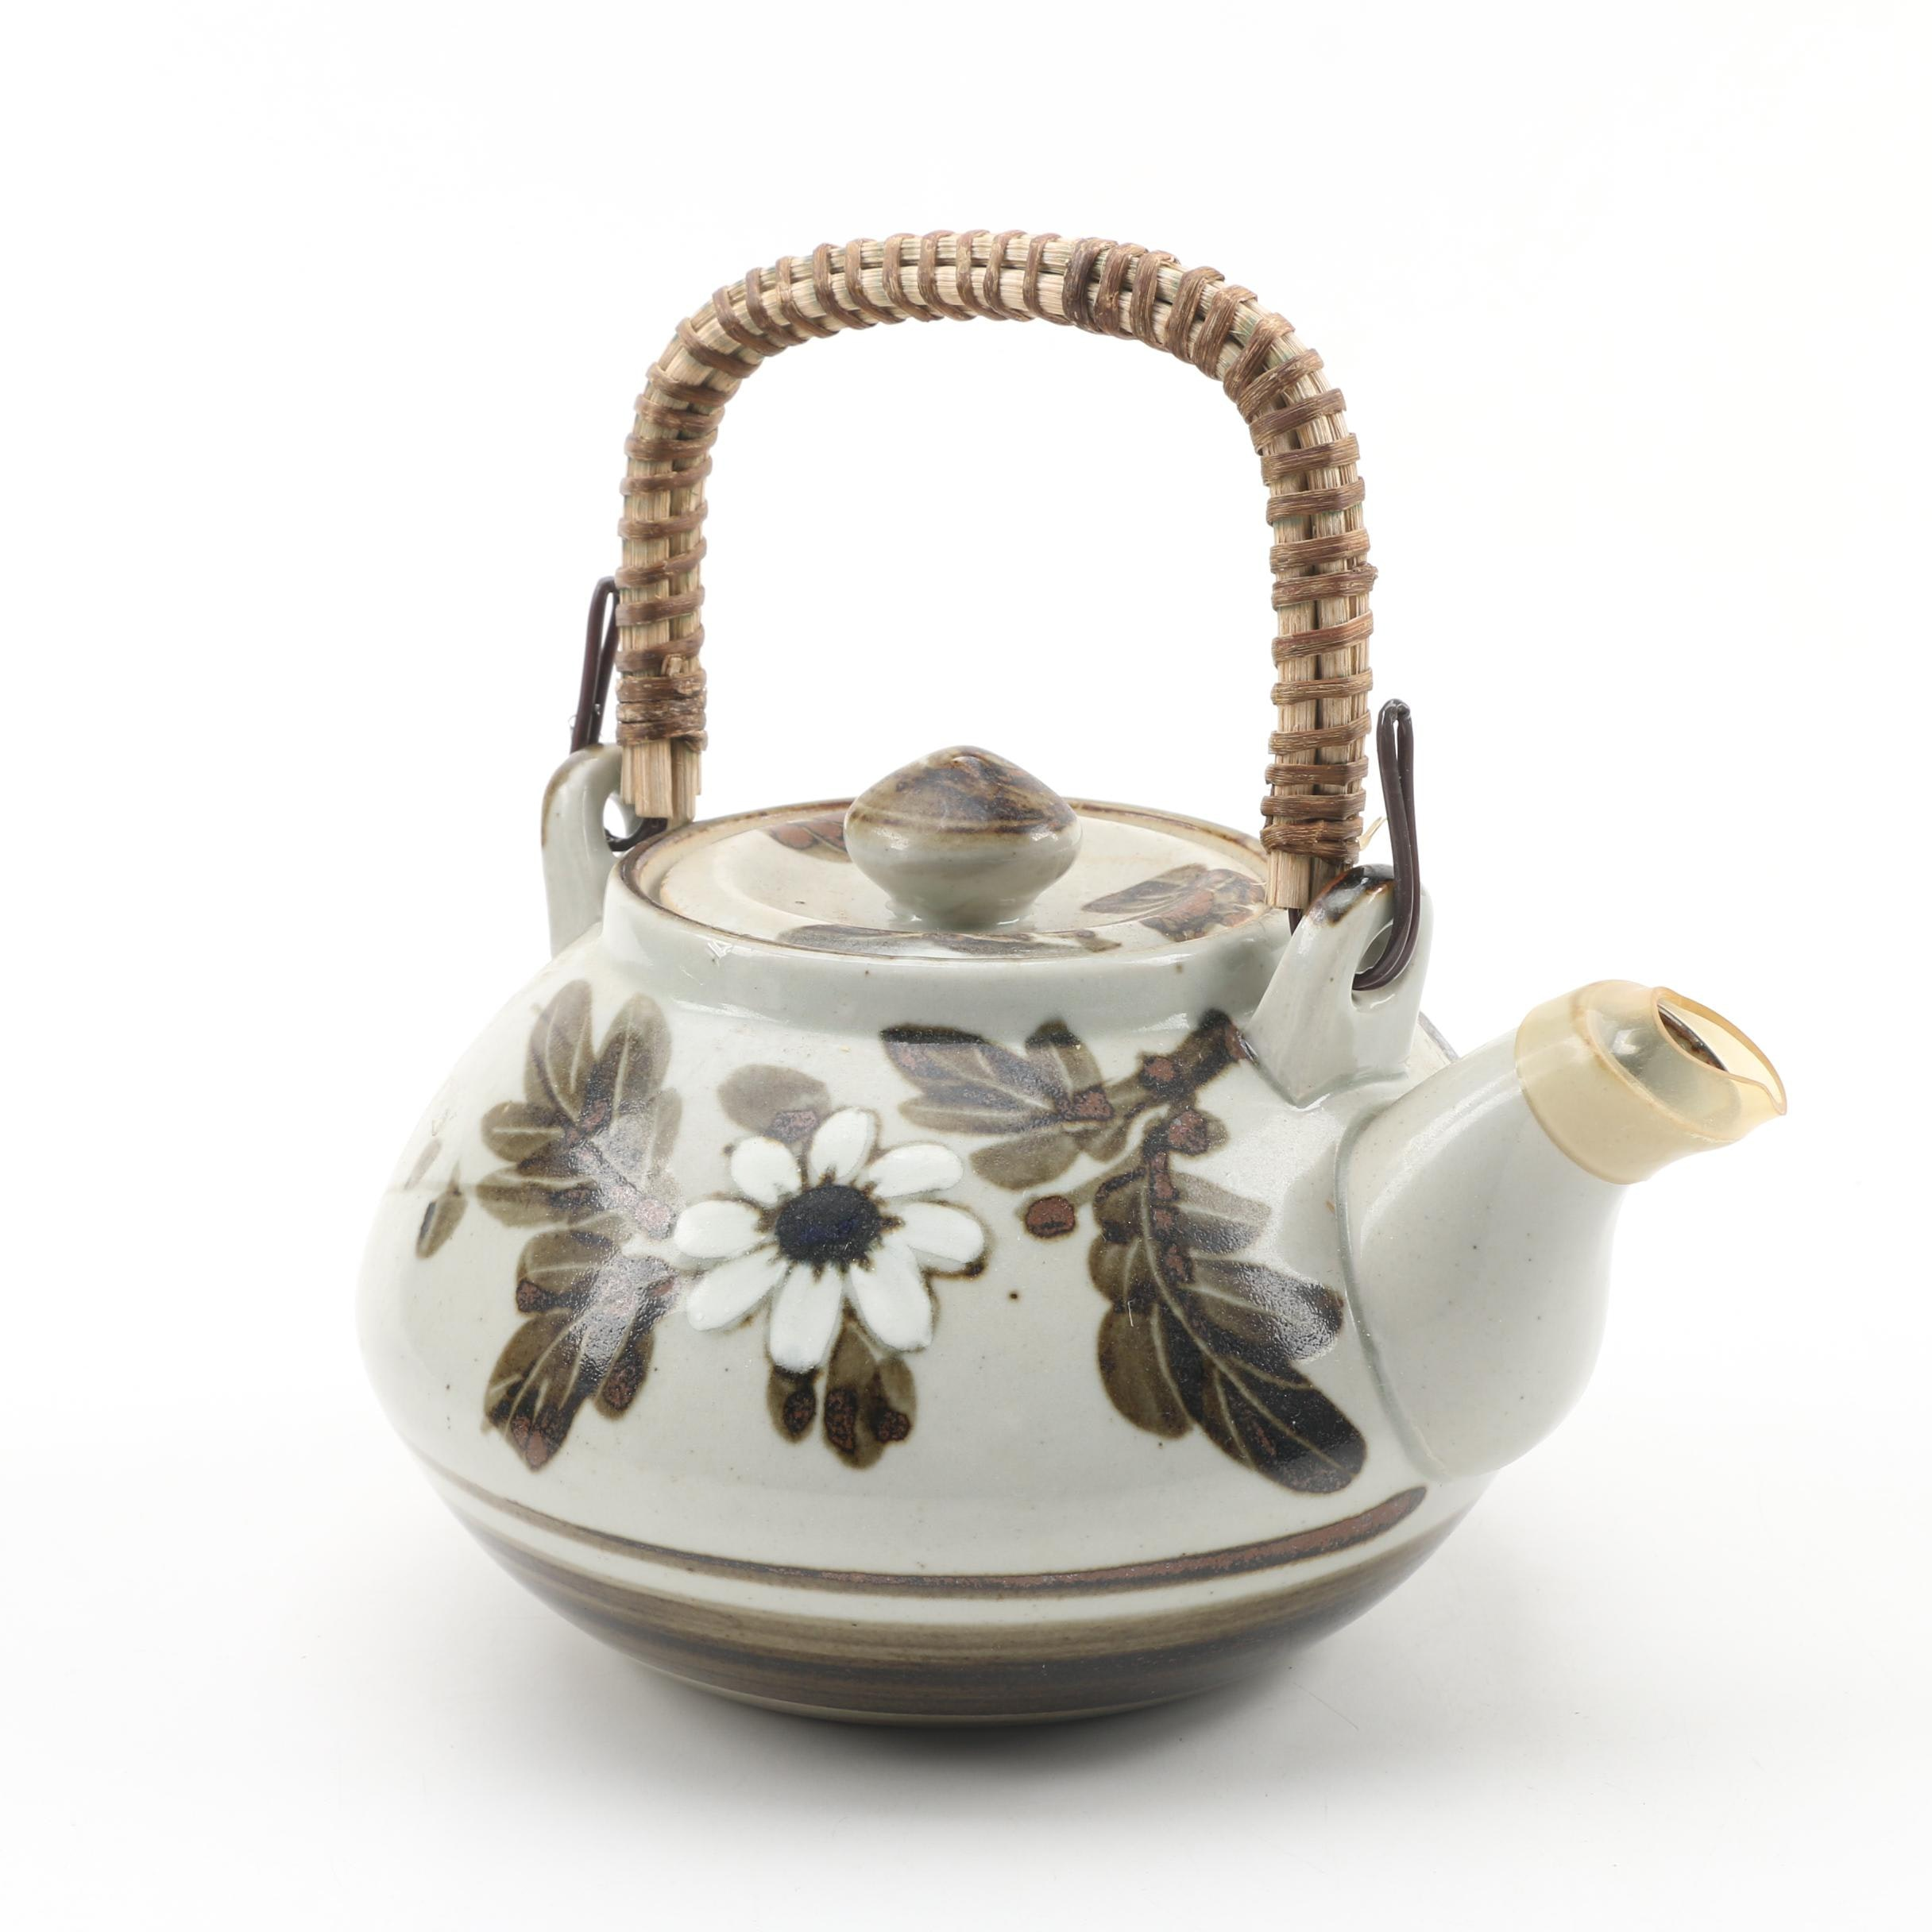 OMC Japanese Pottery Teapot with Wicker Handle, Late 20th Century